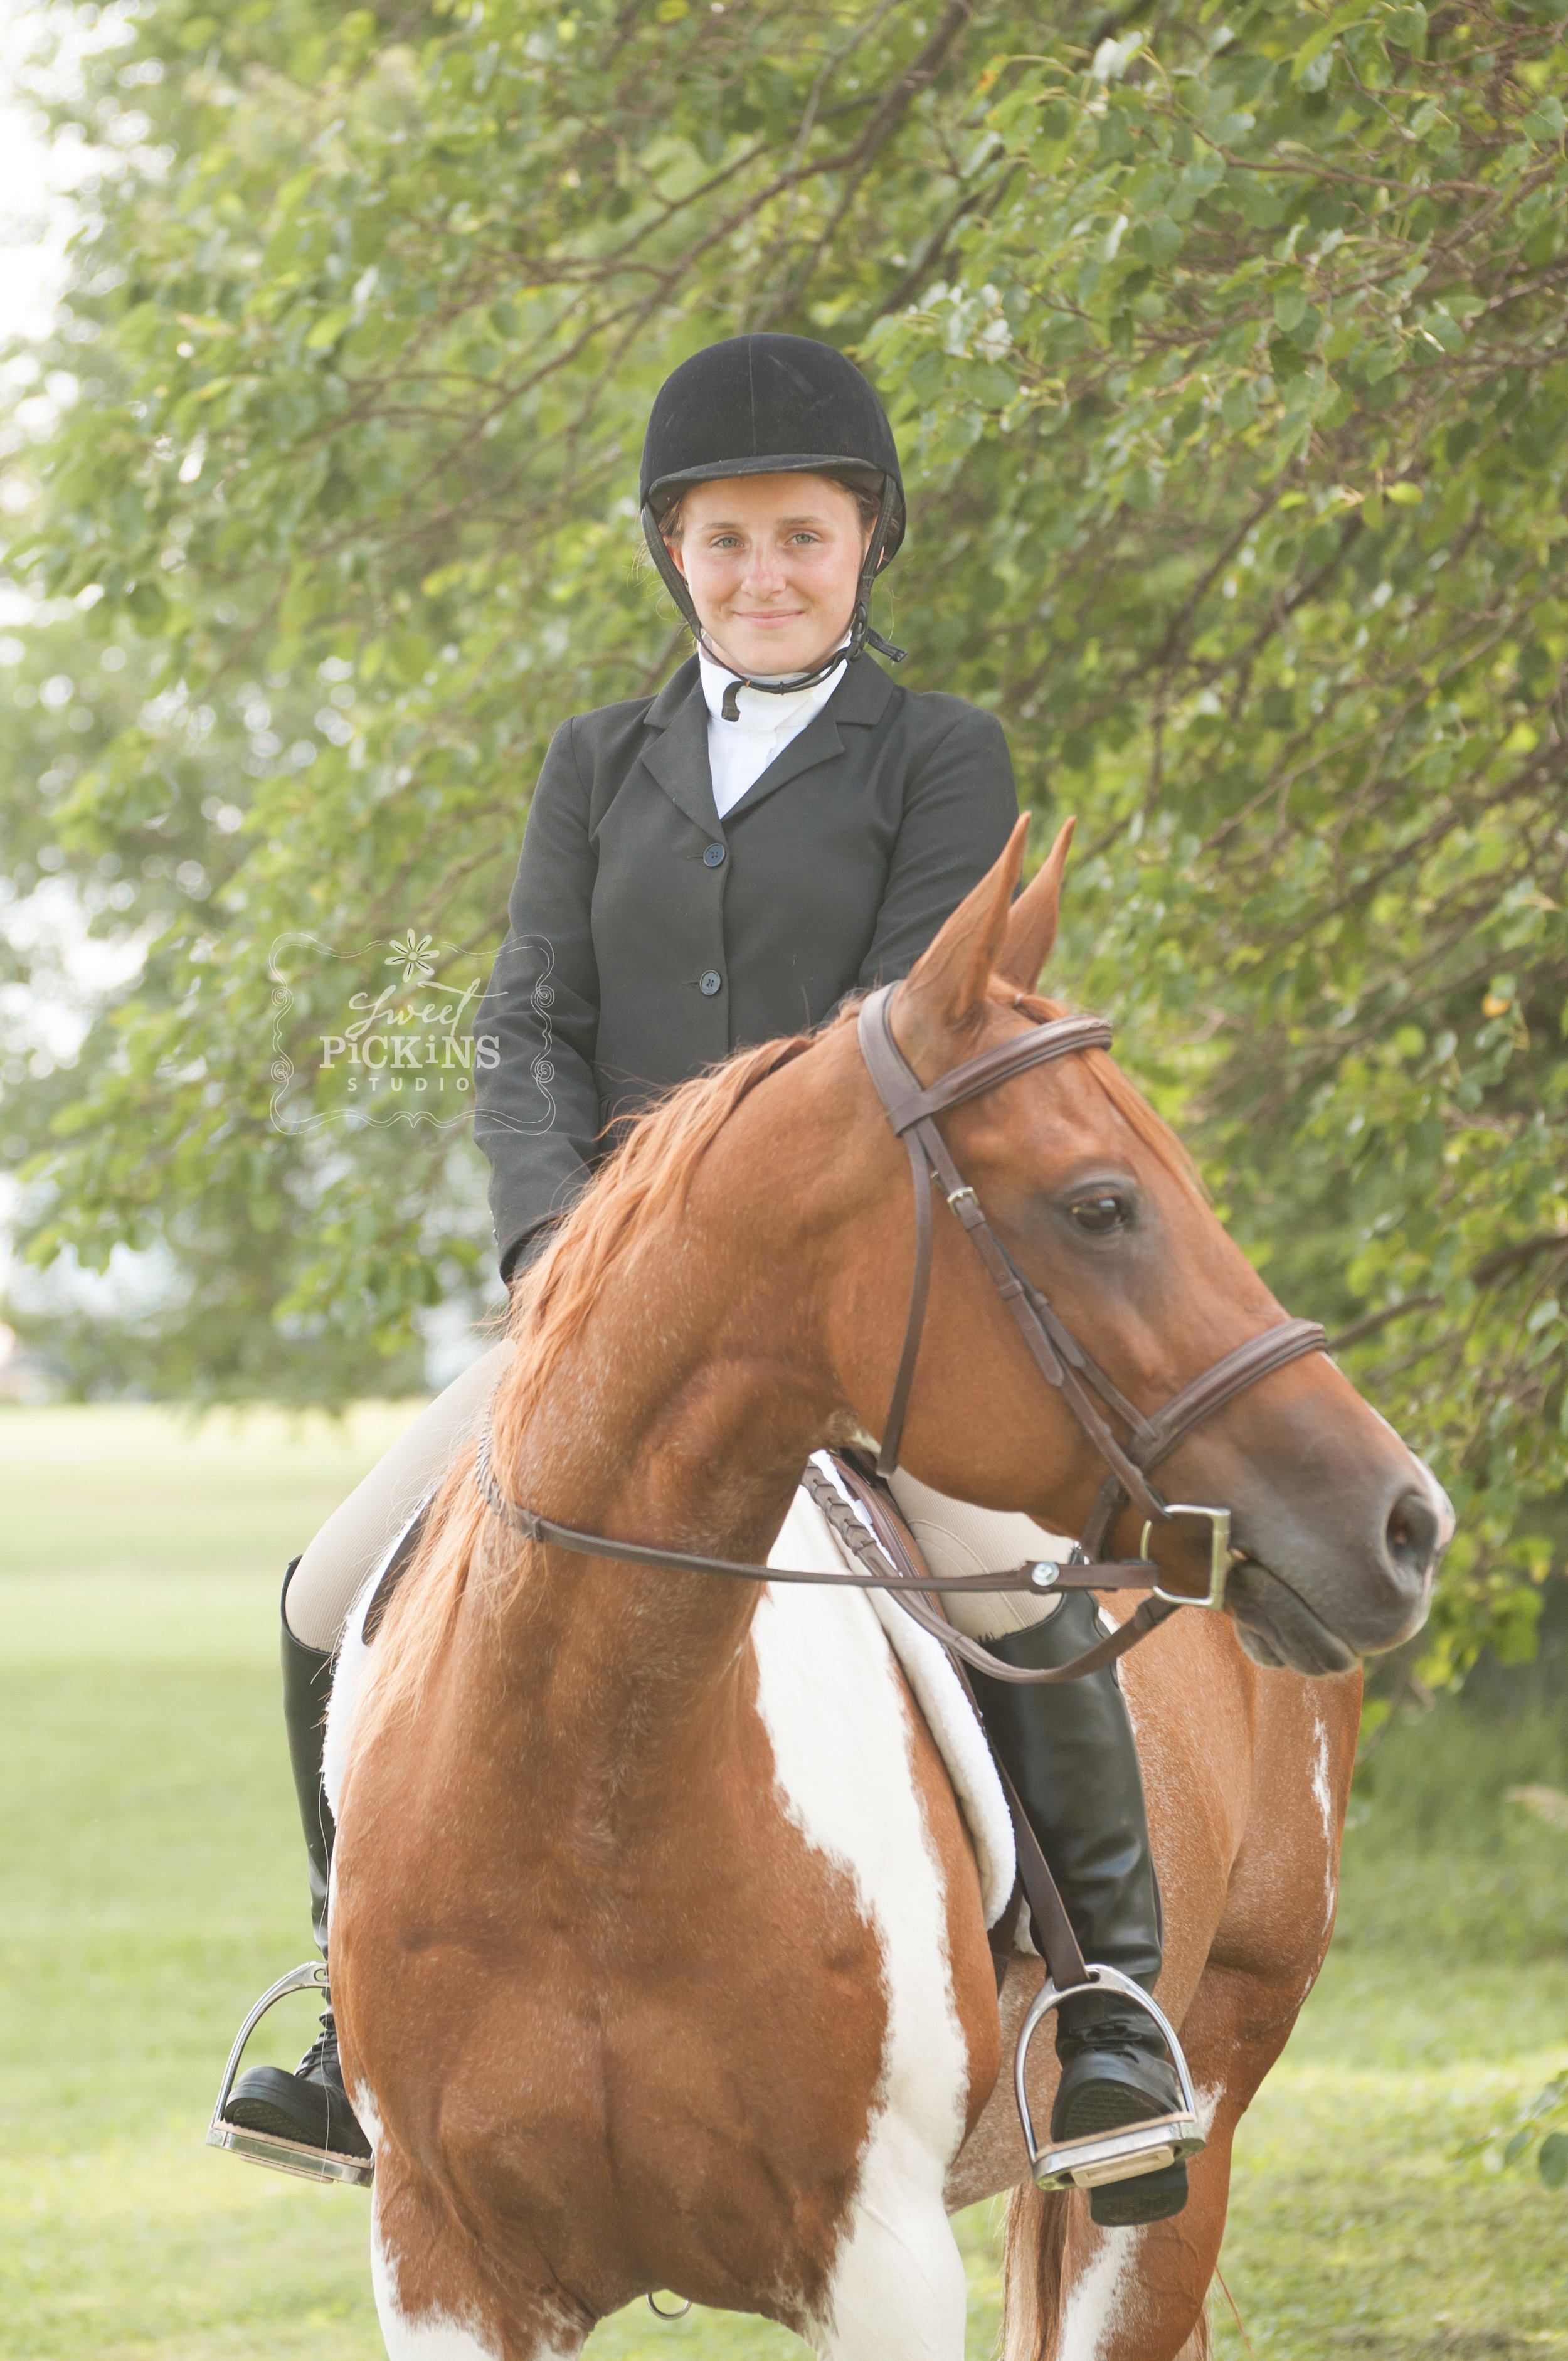 Equestrian Horse Portrait Photography Mini Session at Greentown Open Show